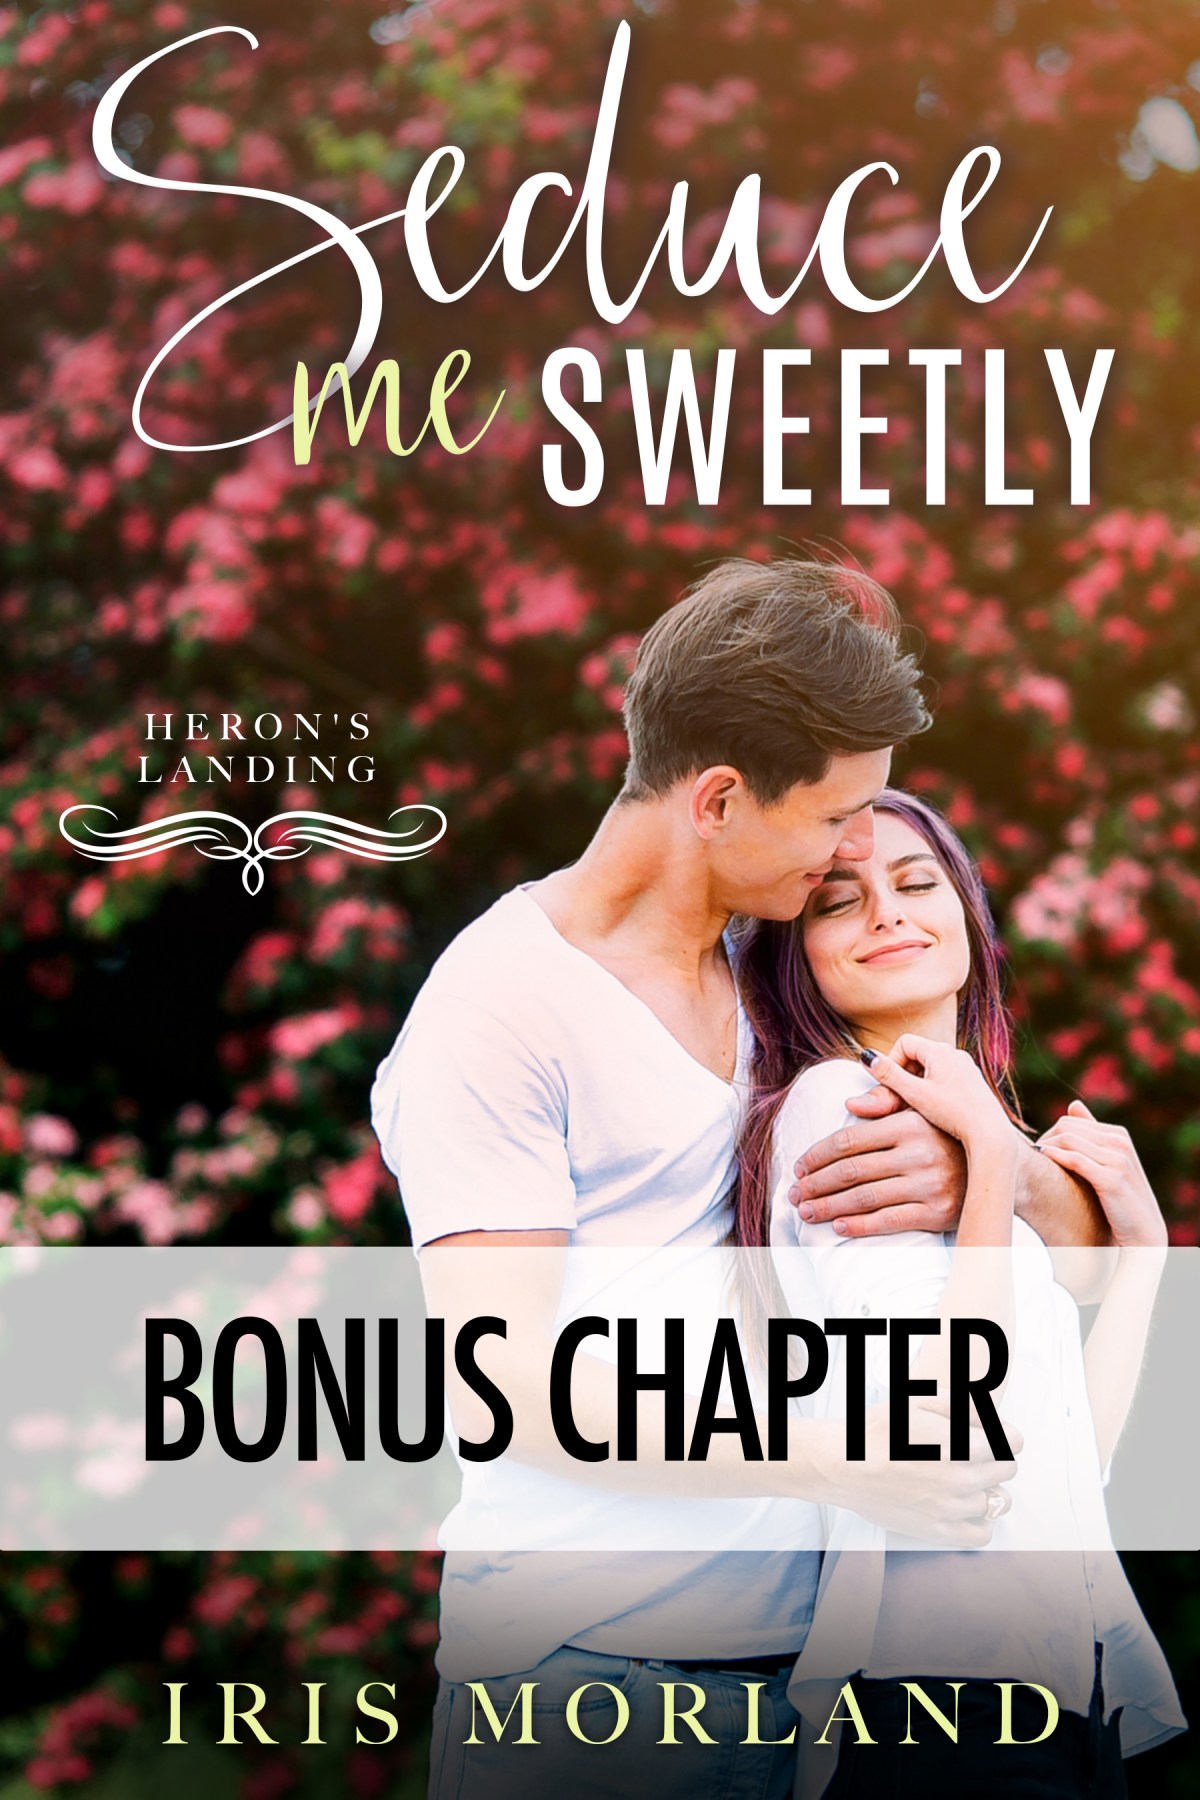 seducemesweetly NEW ARIA cover bonus chapter